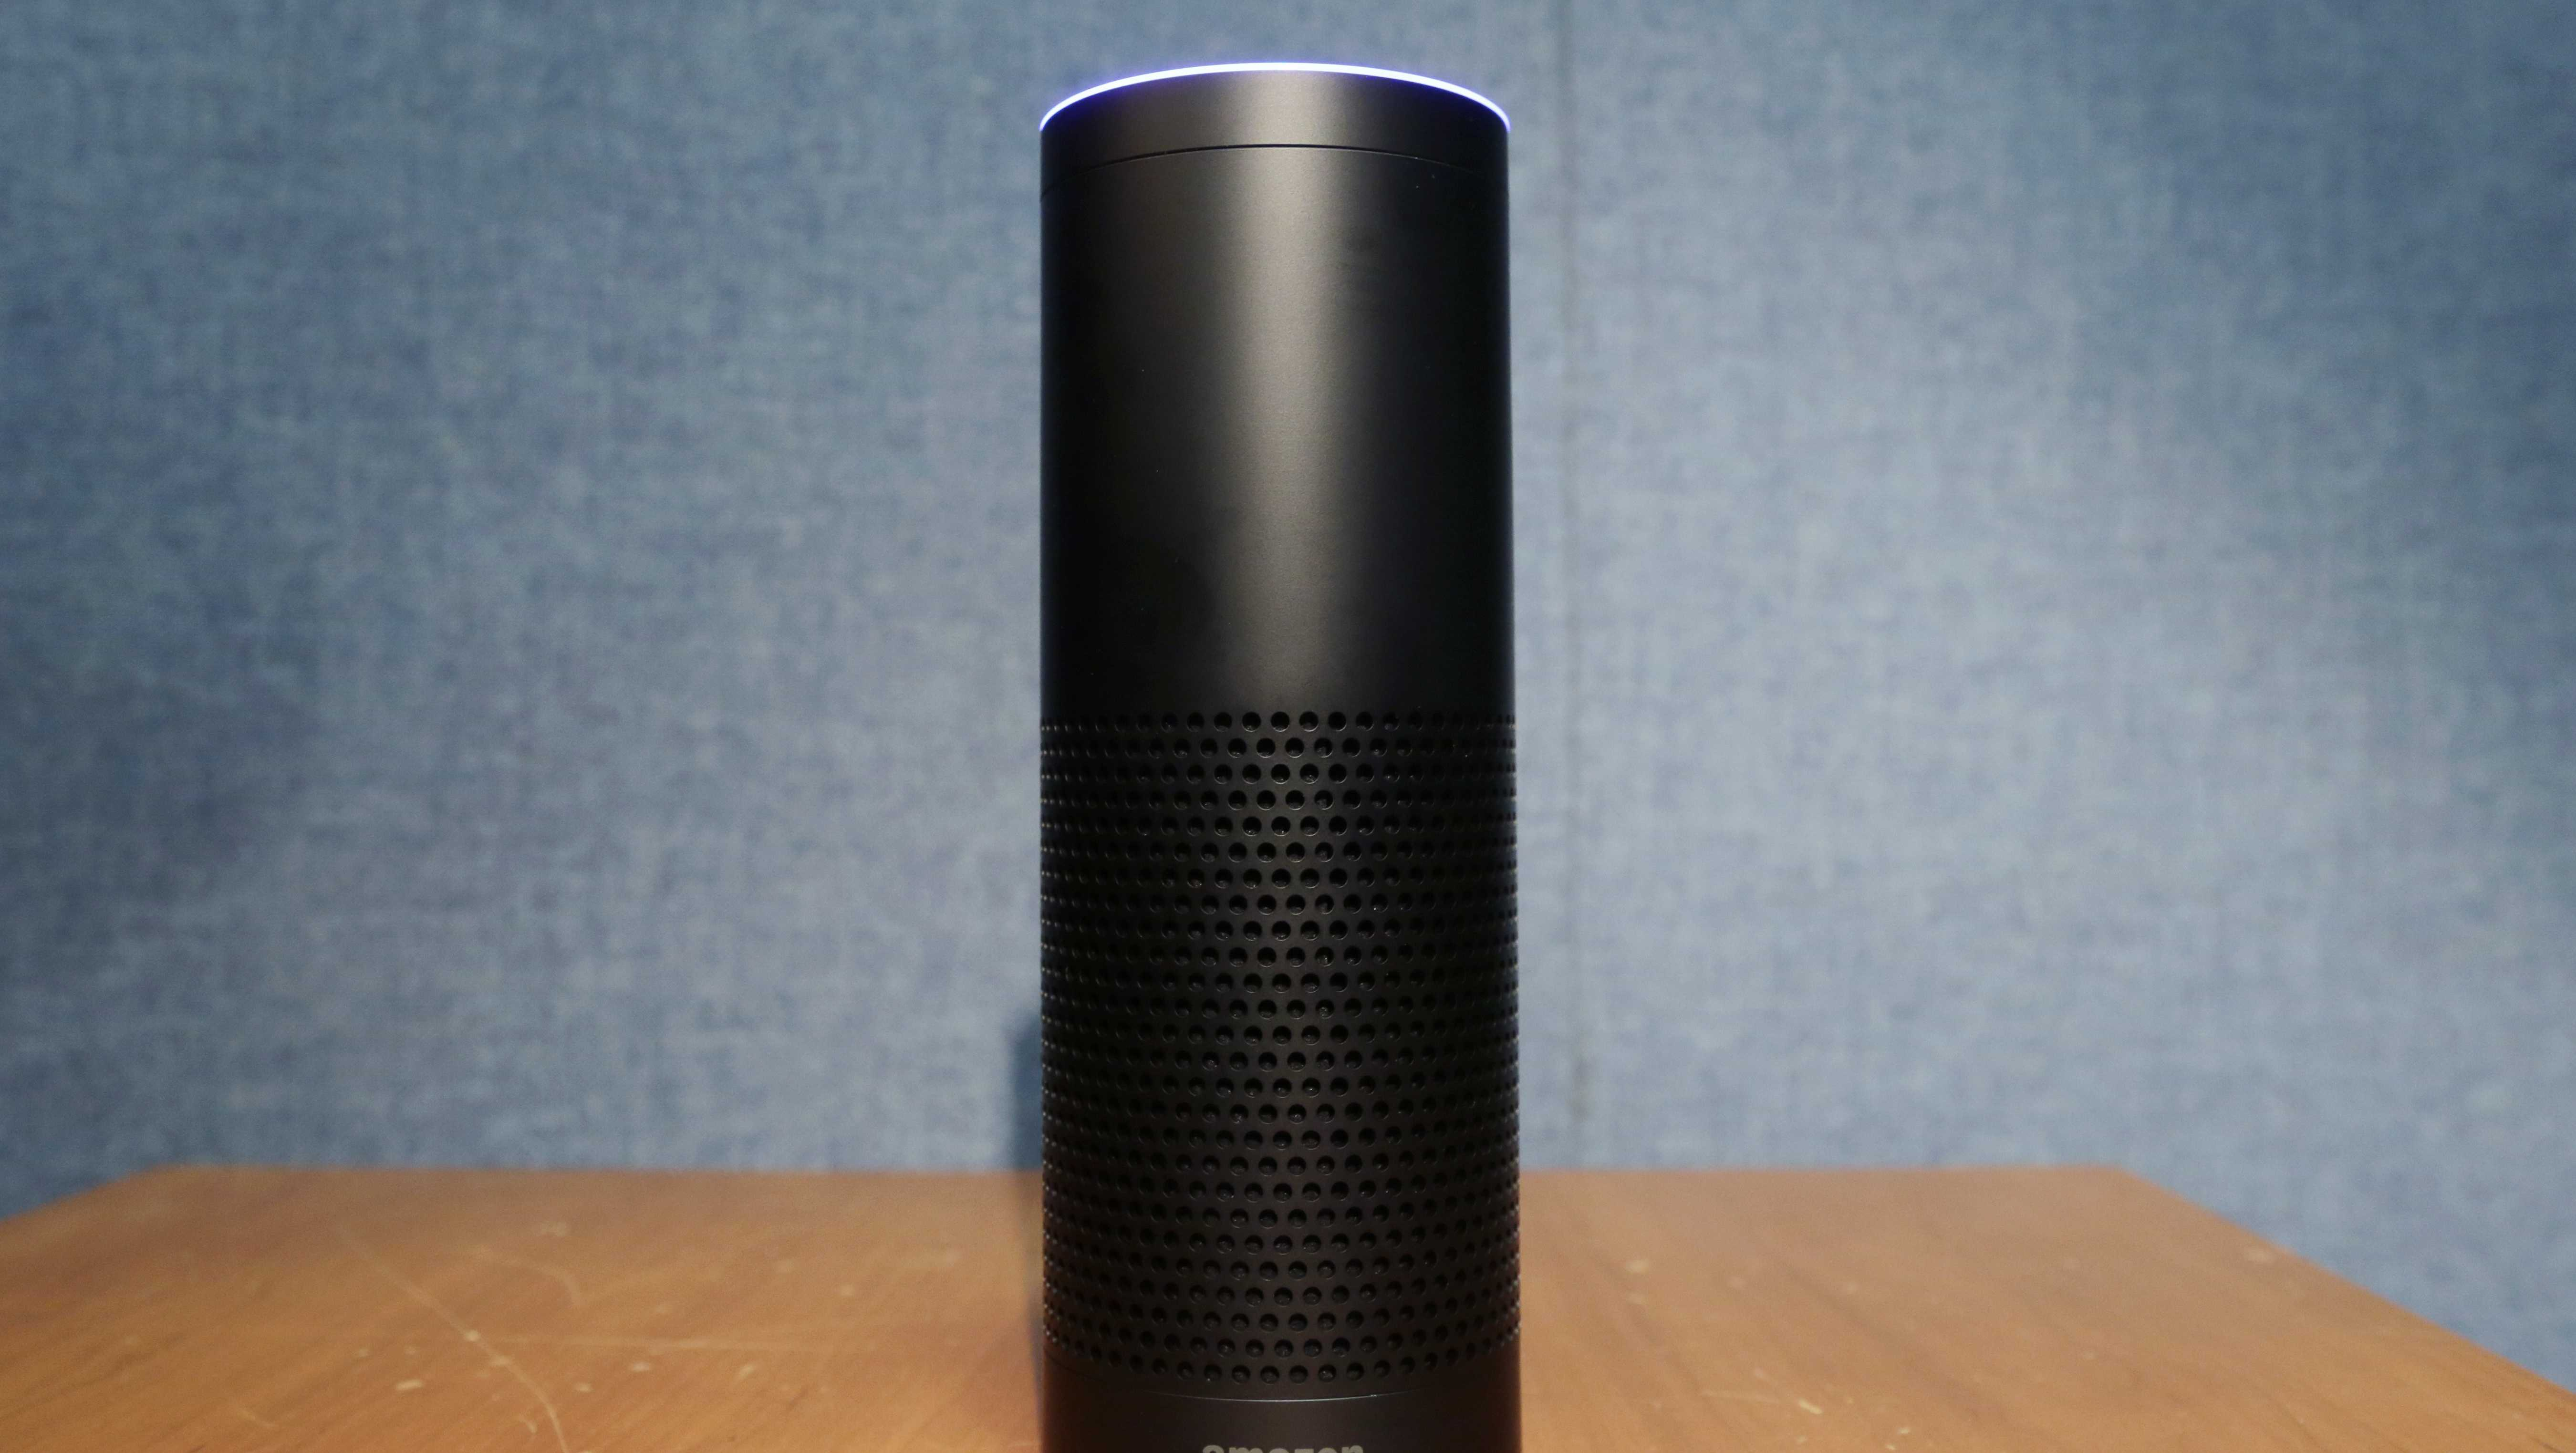 This July 29, 2015 file photo shows Amazon's Echo speaker.